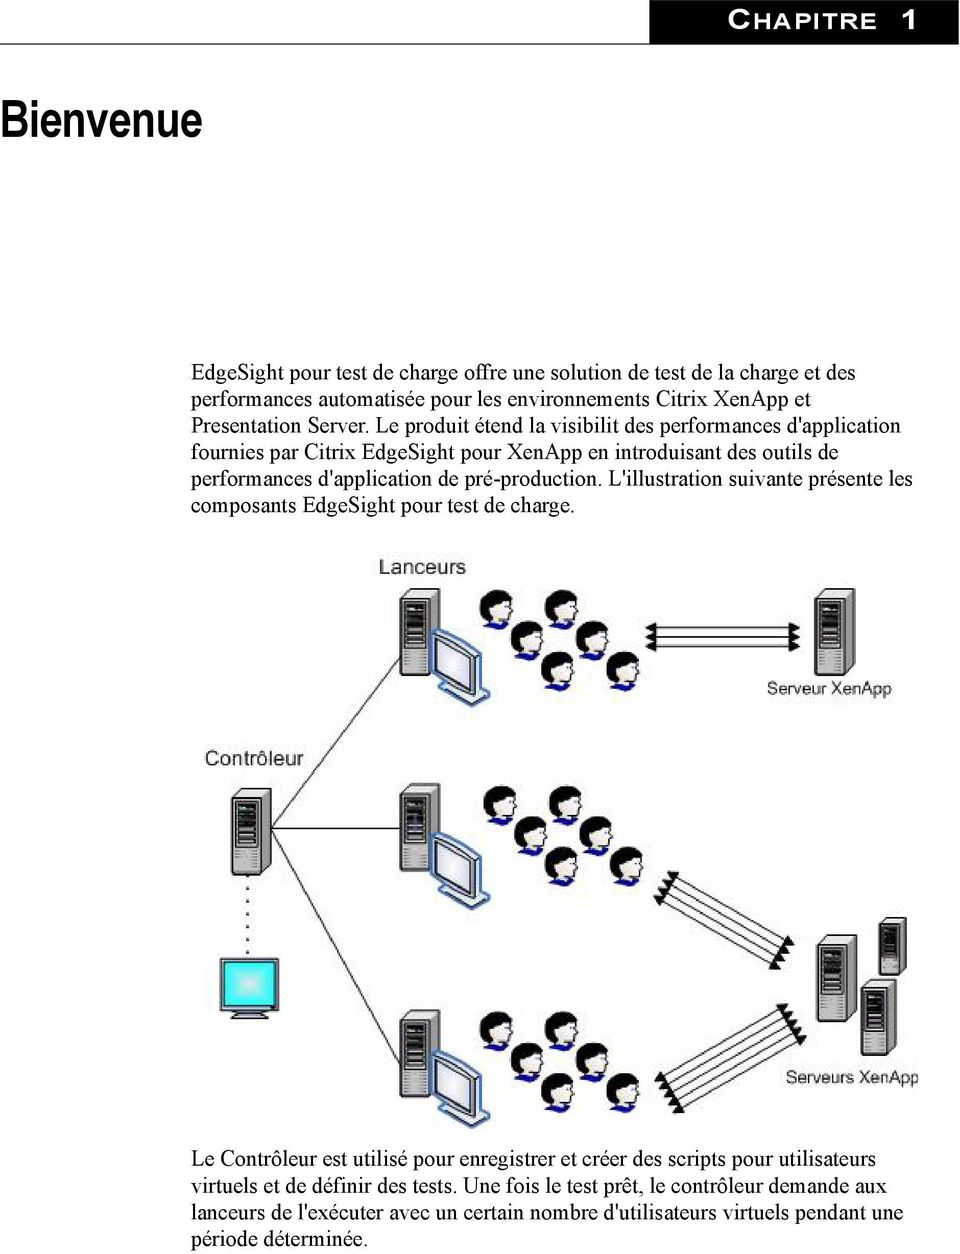 Le produit étend la visibilit des performances d'application fournies par Citrix EdgeSight pour XenApp en introduisant des outils de performances d'application de pré-production.